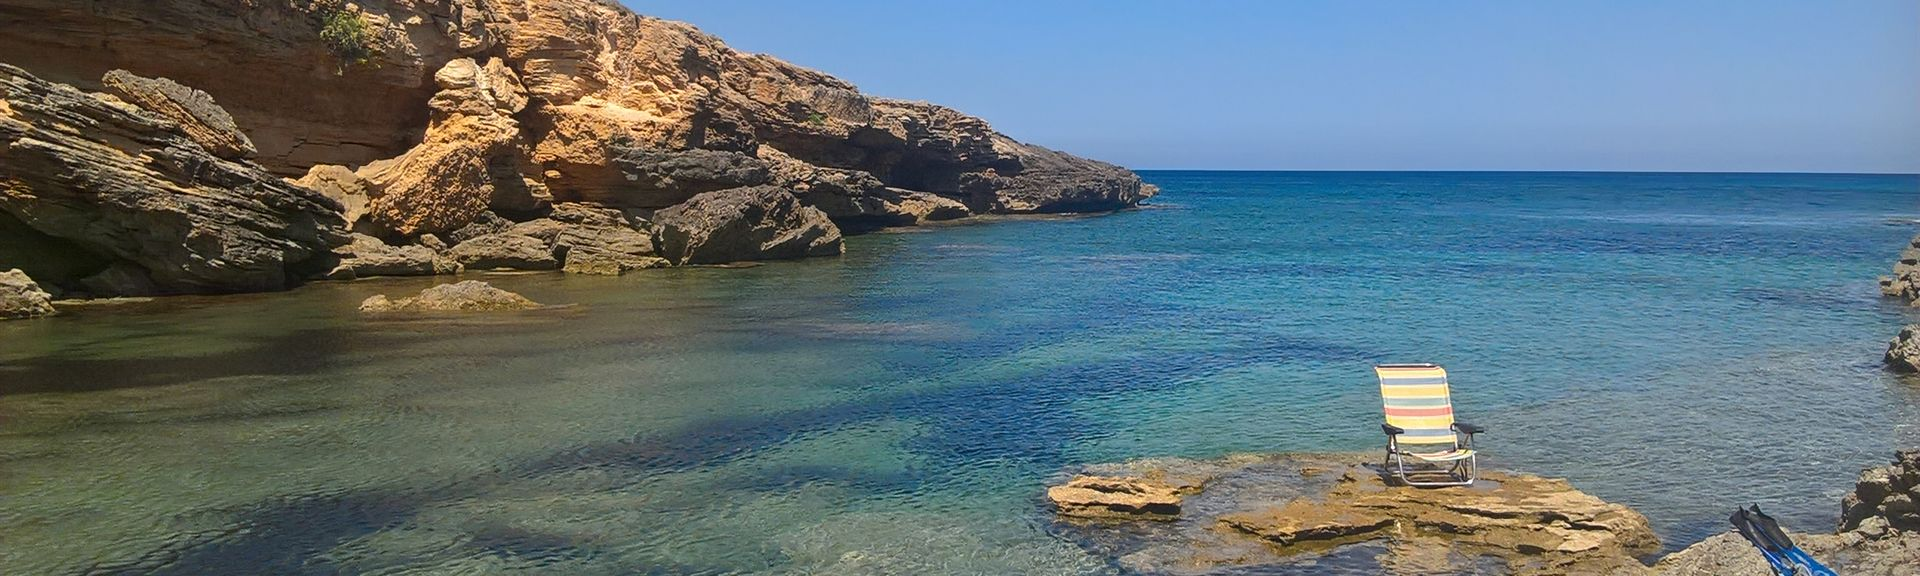 Cala Murada, Balearic Islands, Spain